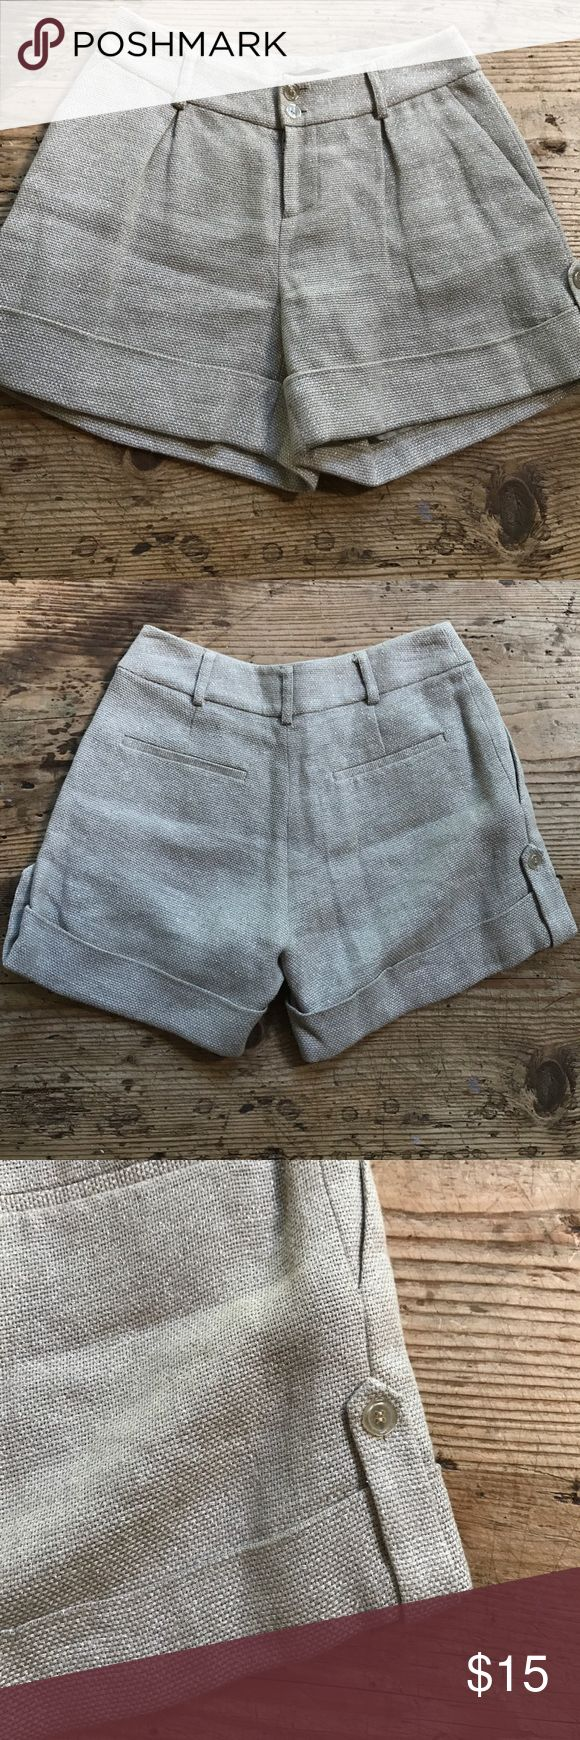 Linen dressy shorts by Saja size 0 Boutique Linen pleated and lined dressy shorts size 0. These have the coolest golden sheen to them with a touch of sparkle. Super dressy. Pockets. Size 0. Would also fit a 00. Saja Shorts